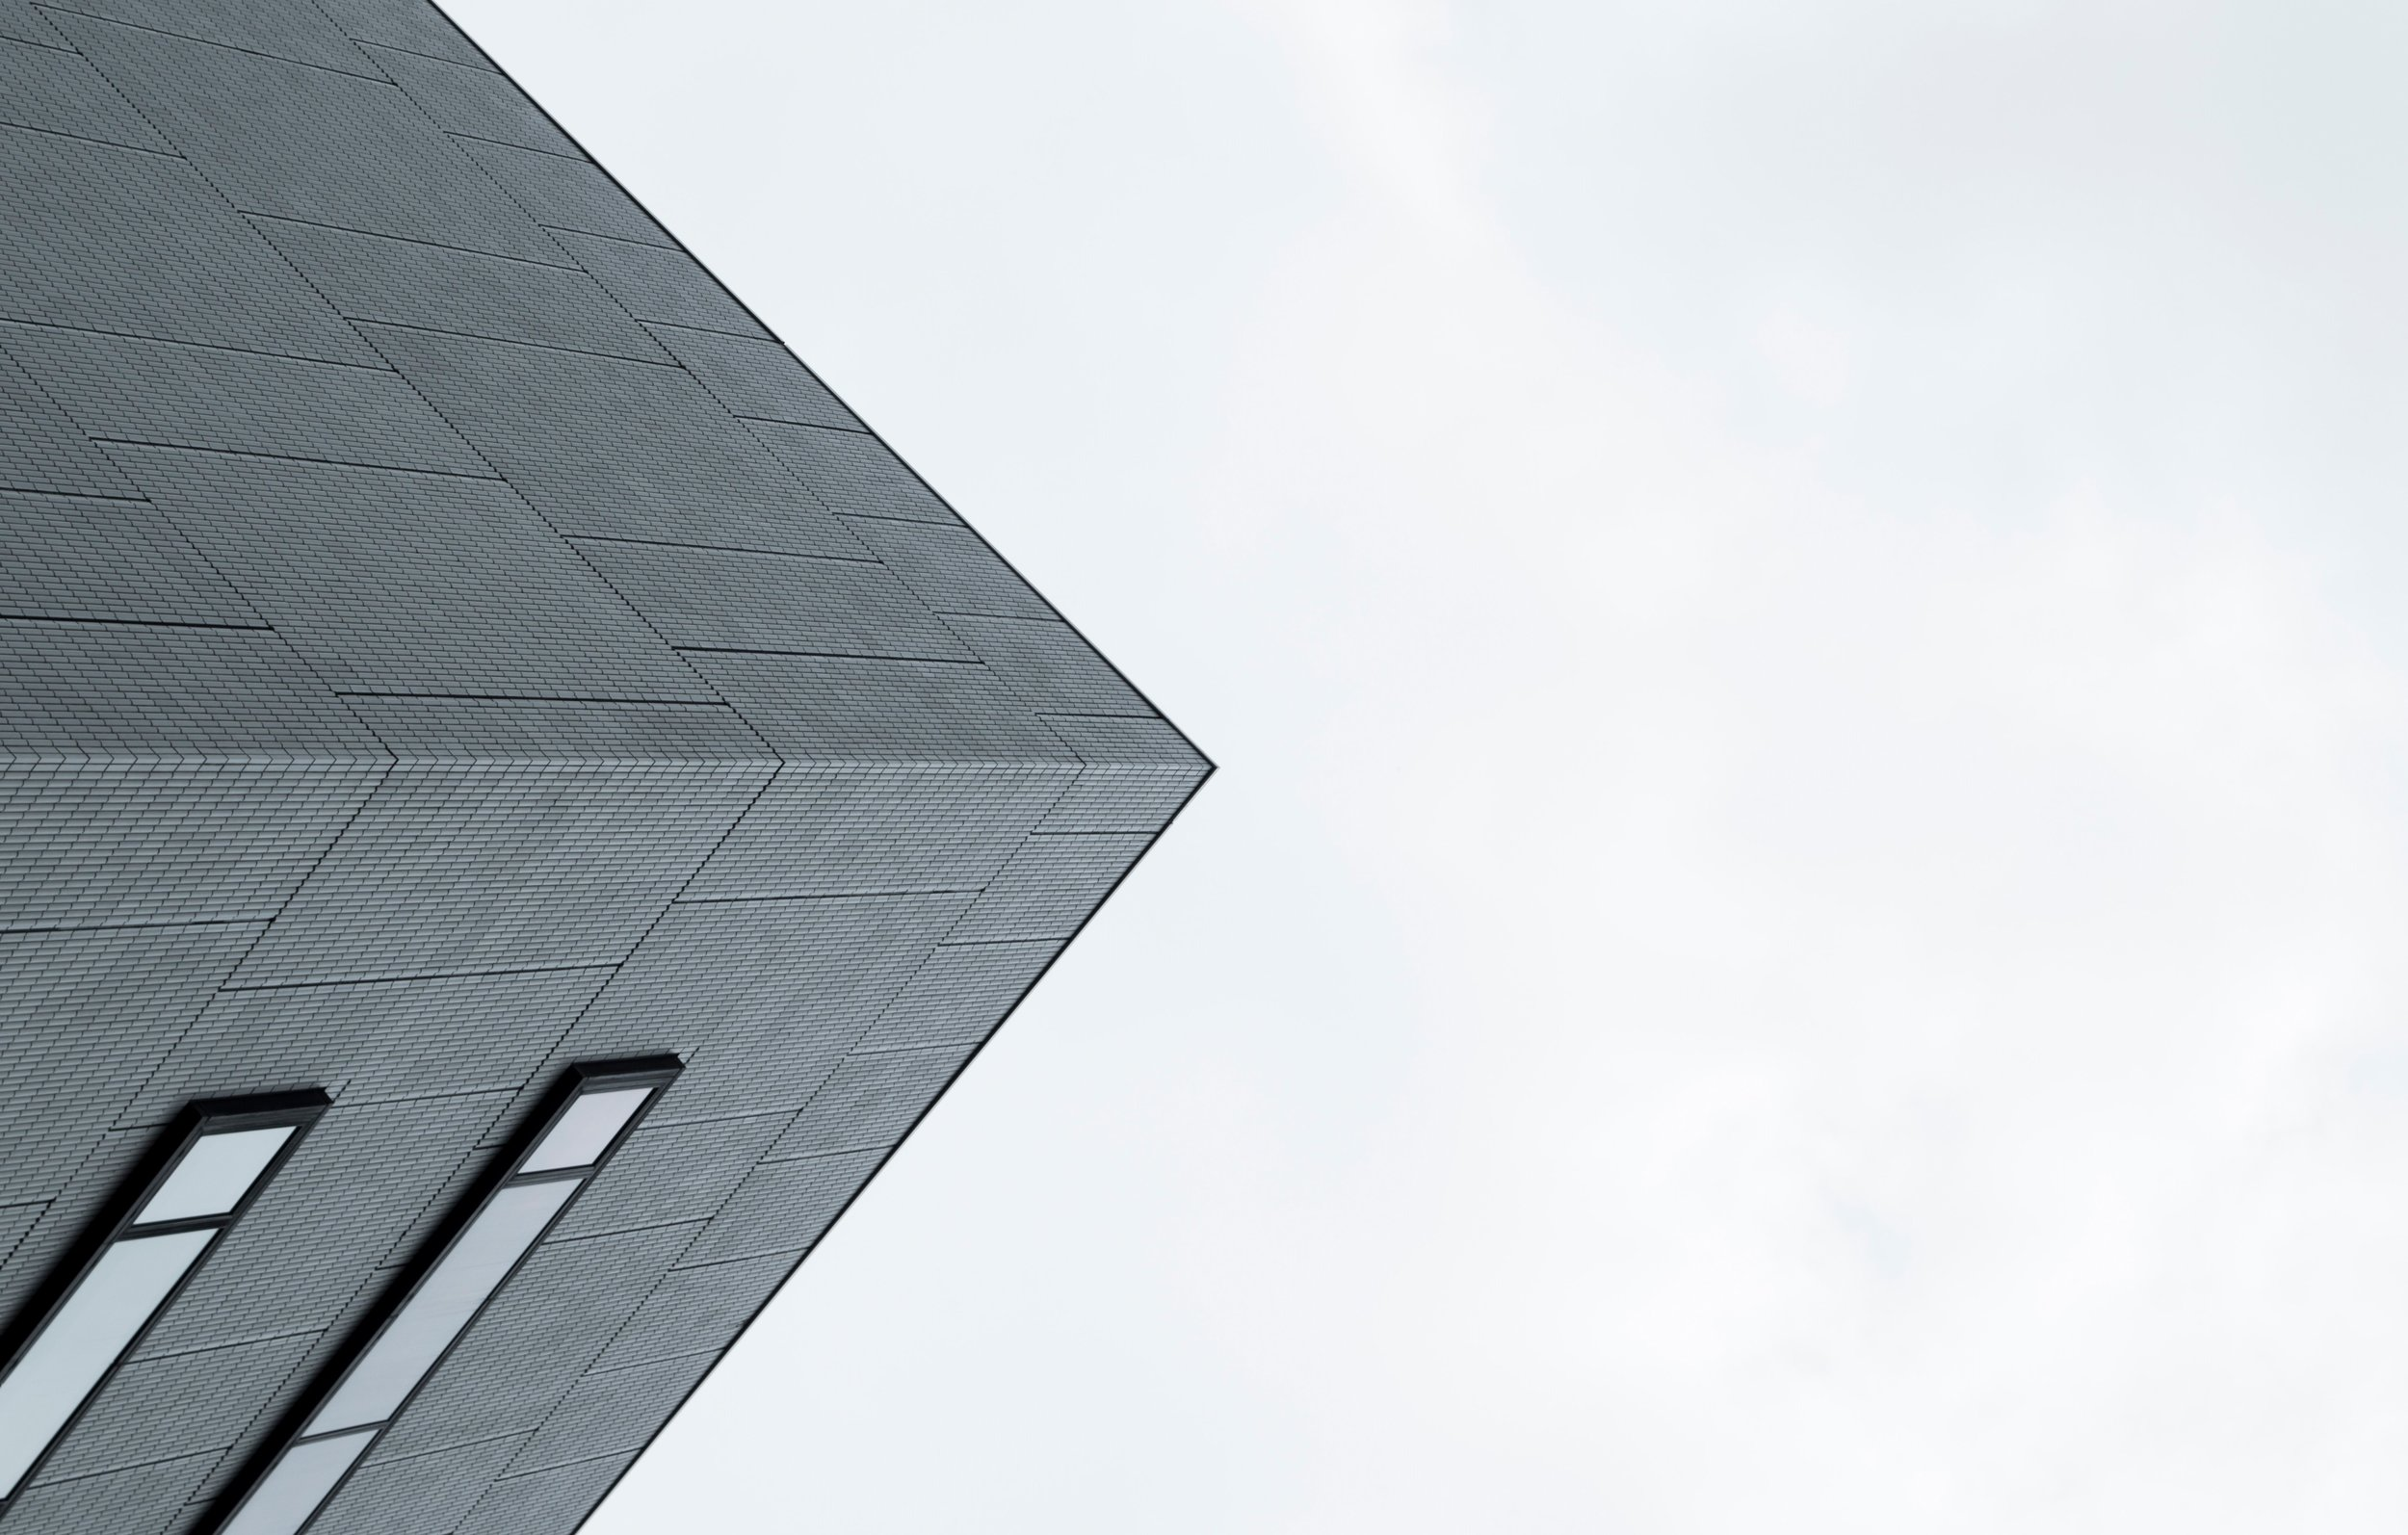 architecture-black-and-white-black-and-white-967354.jpg